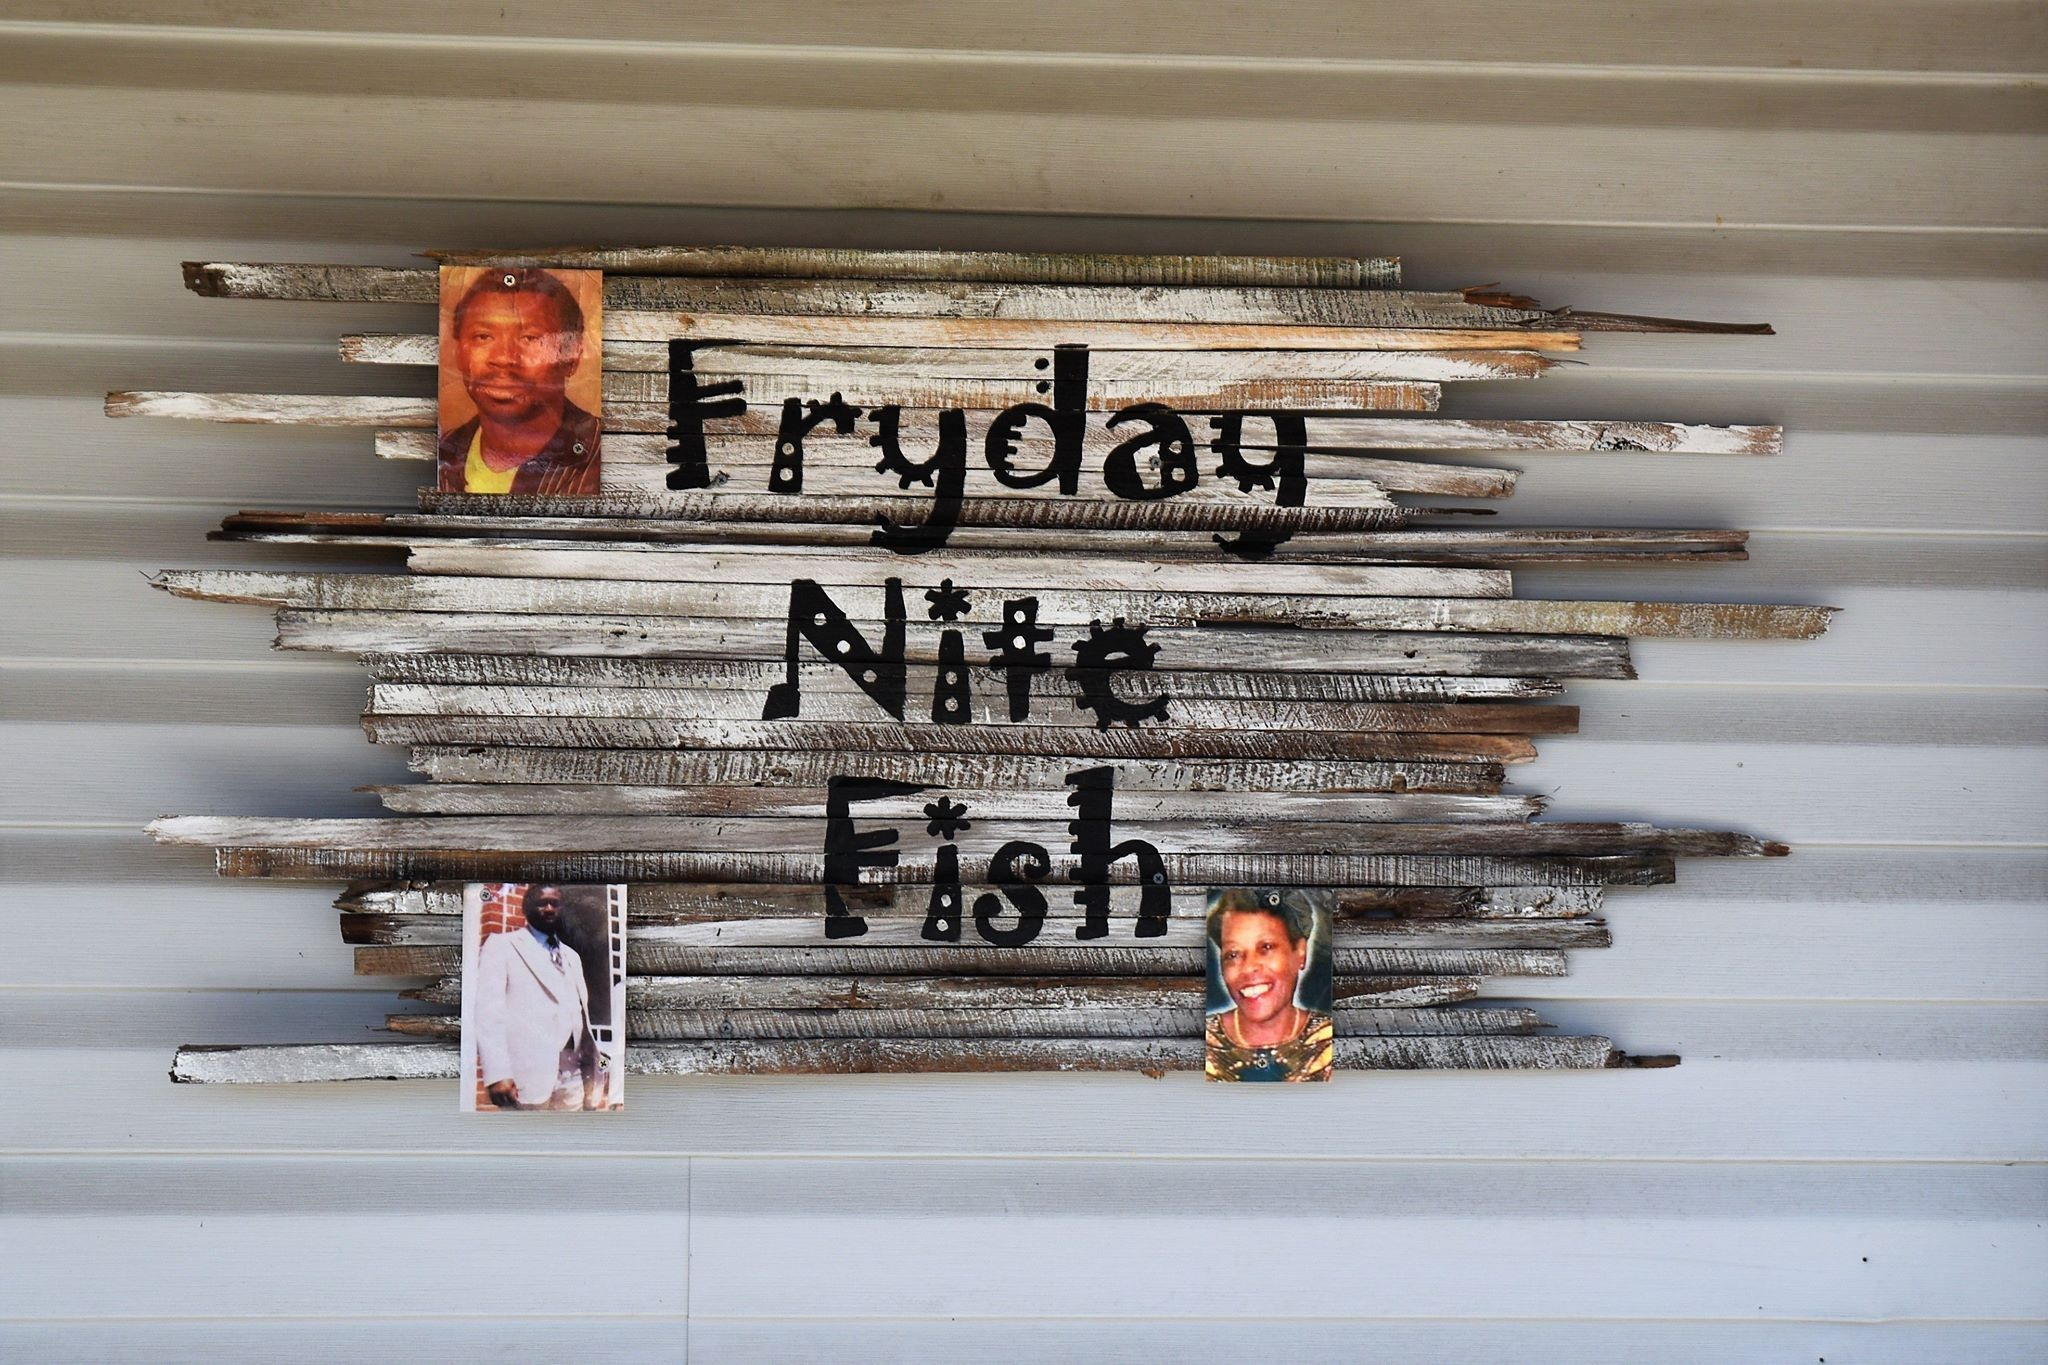 Pictures of family who have inspired the restaurant adorn the sign at Fryday Nite Fish.